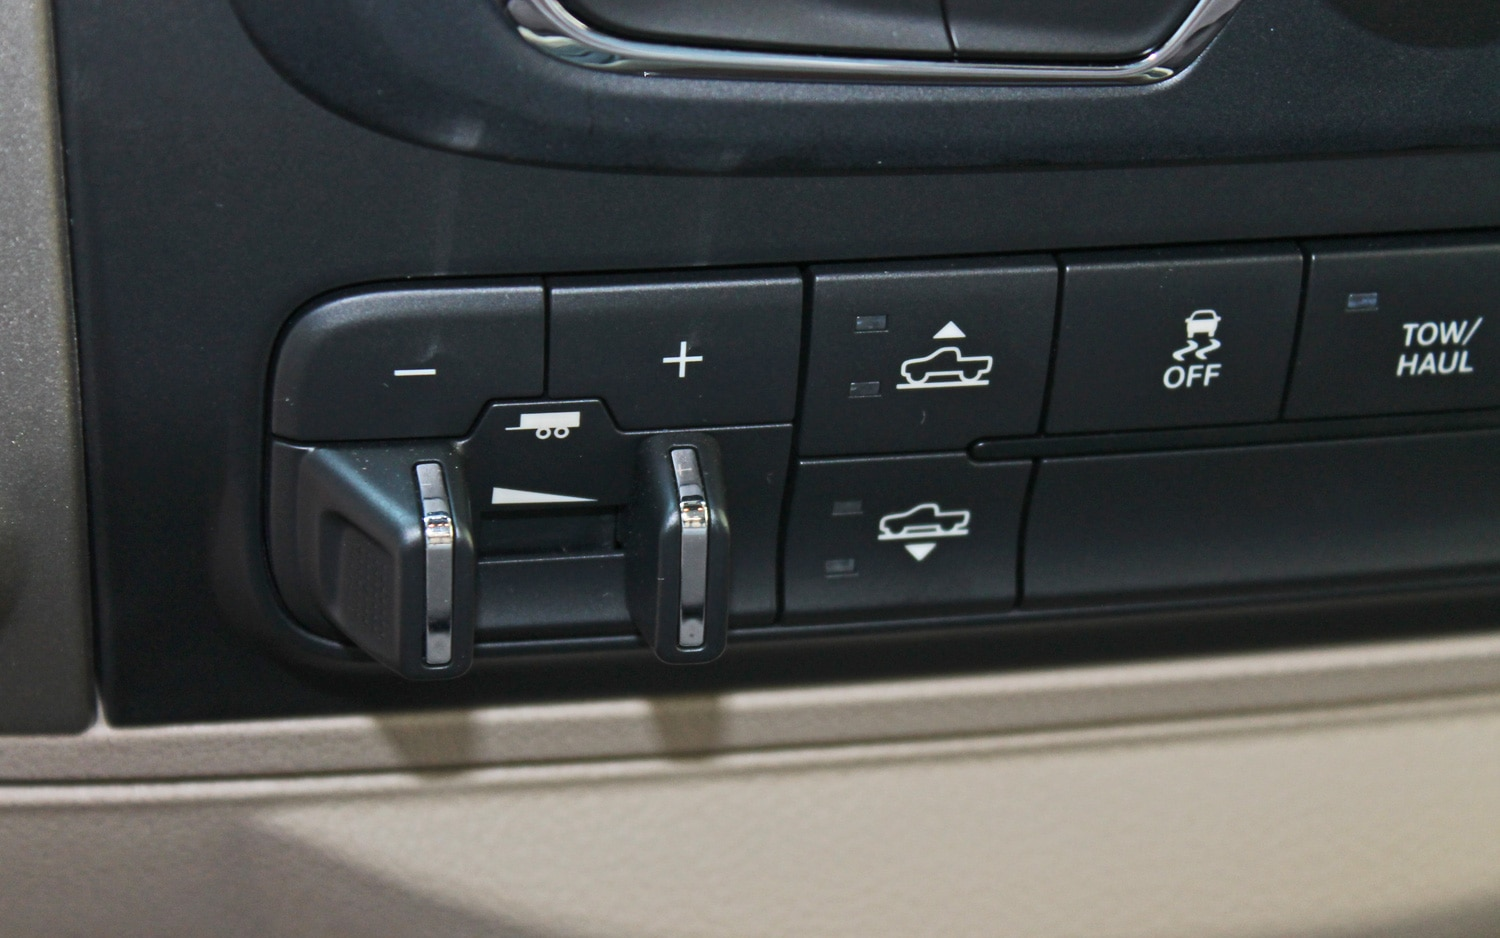 08 Enclave Fuse Box Simple Guide About Wiring Diagram 2013 Ram 17 Images